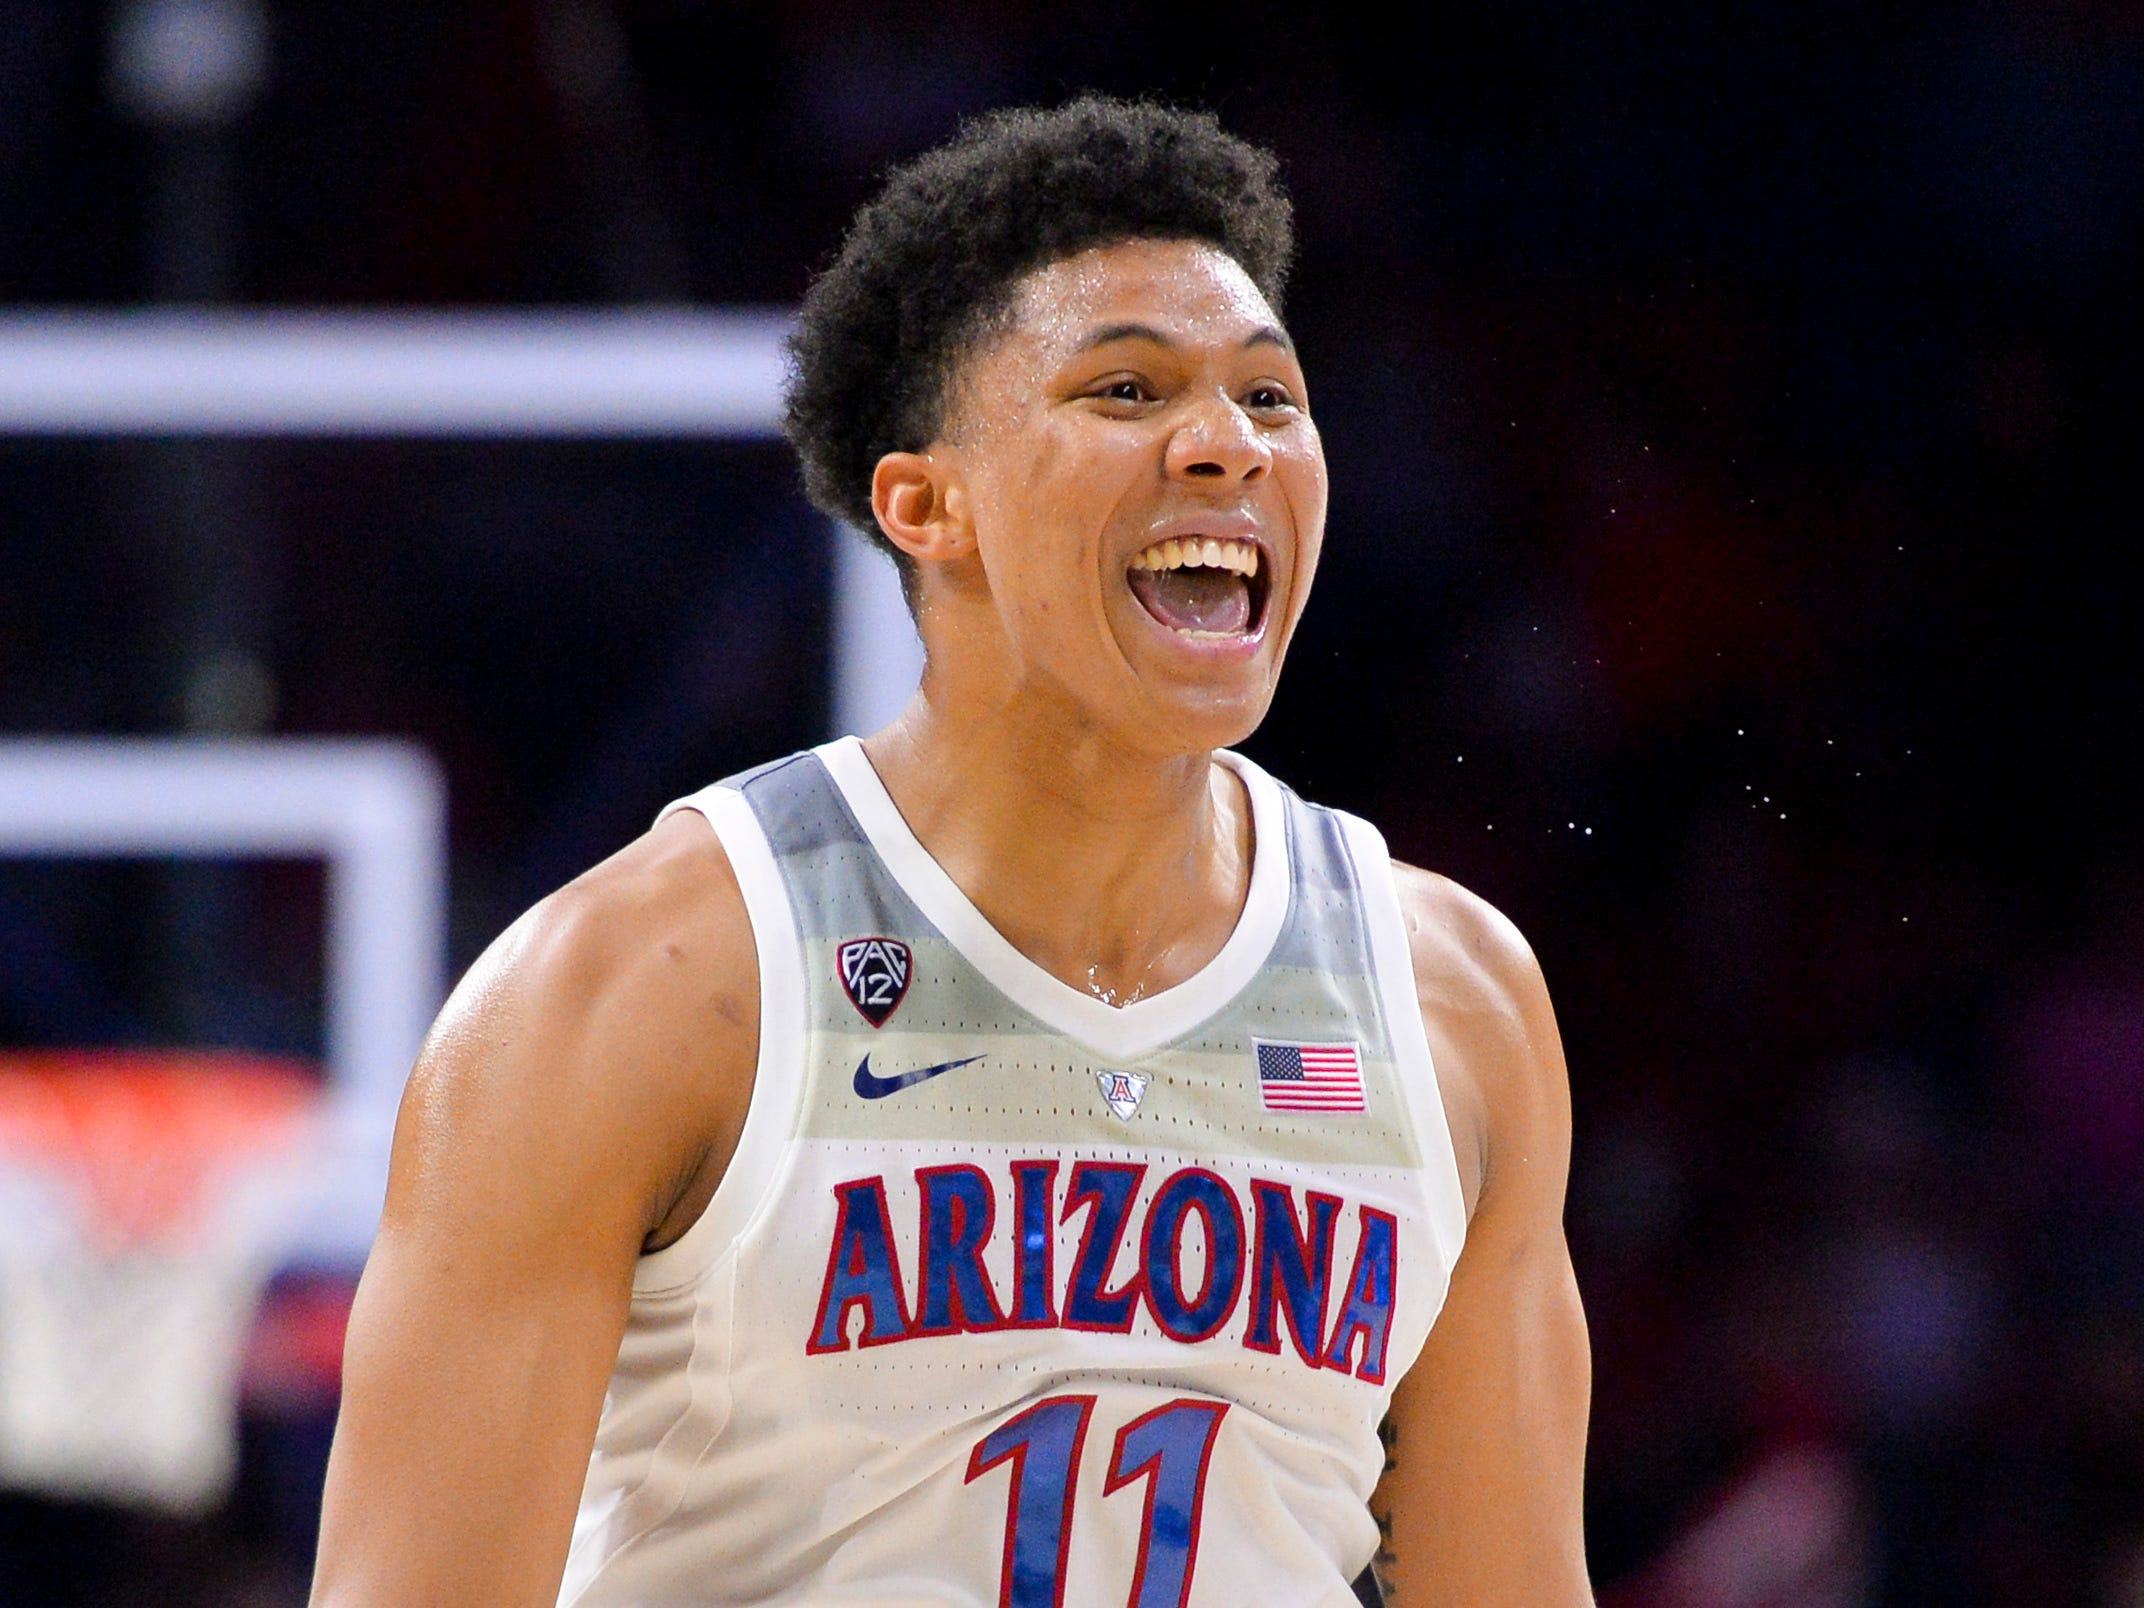 Feb 24, 2019: Arizona Wildcats forward Ira Lee (11) celebrates after defeating the Stanford Cardinal at McKale Center.